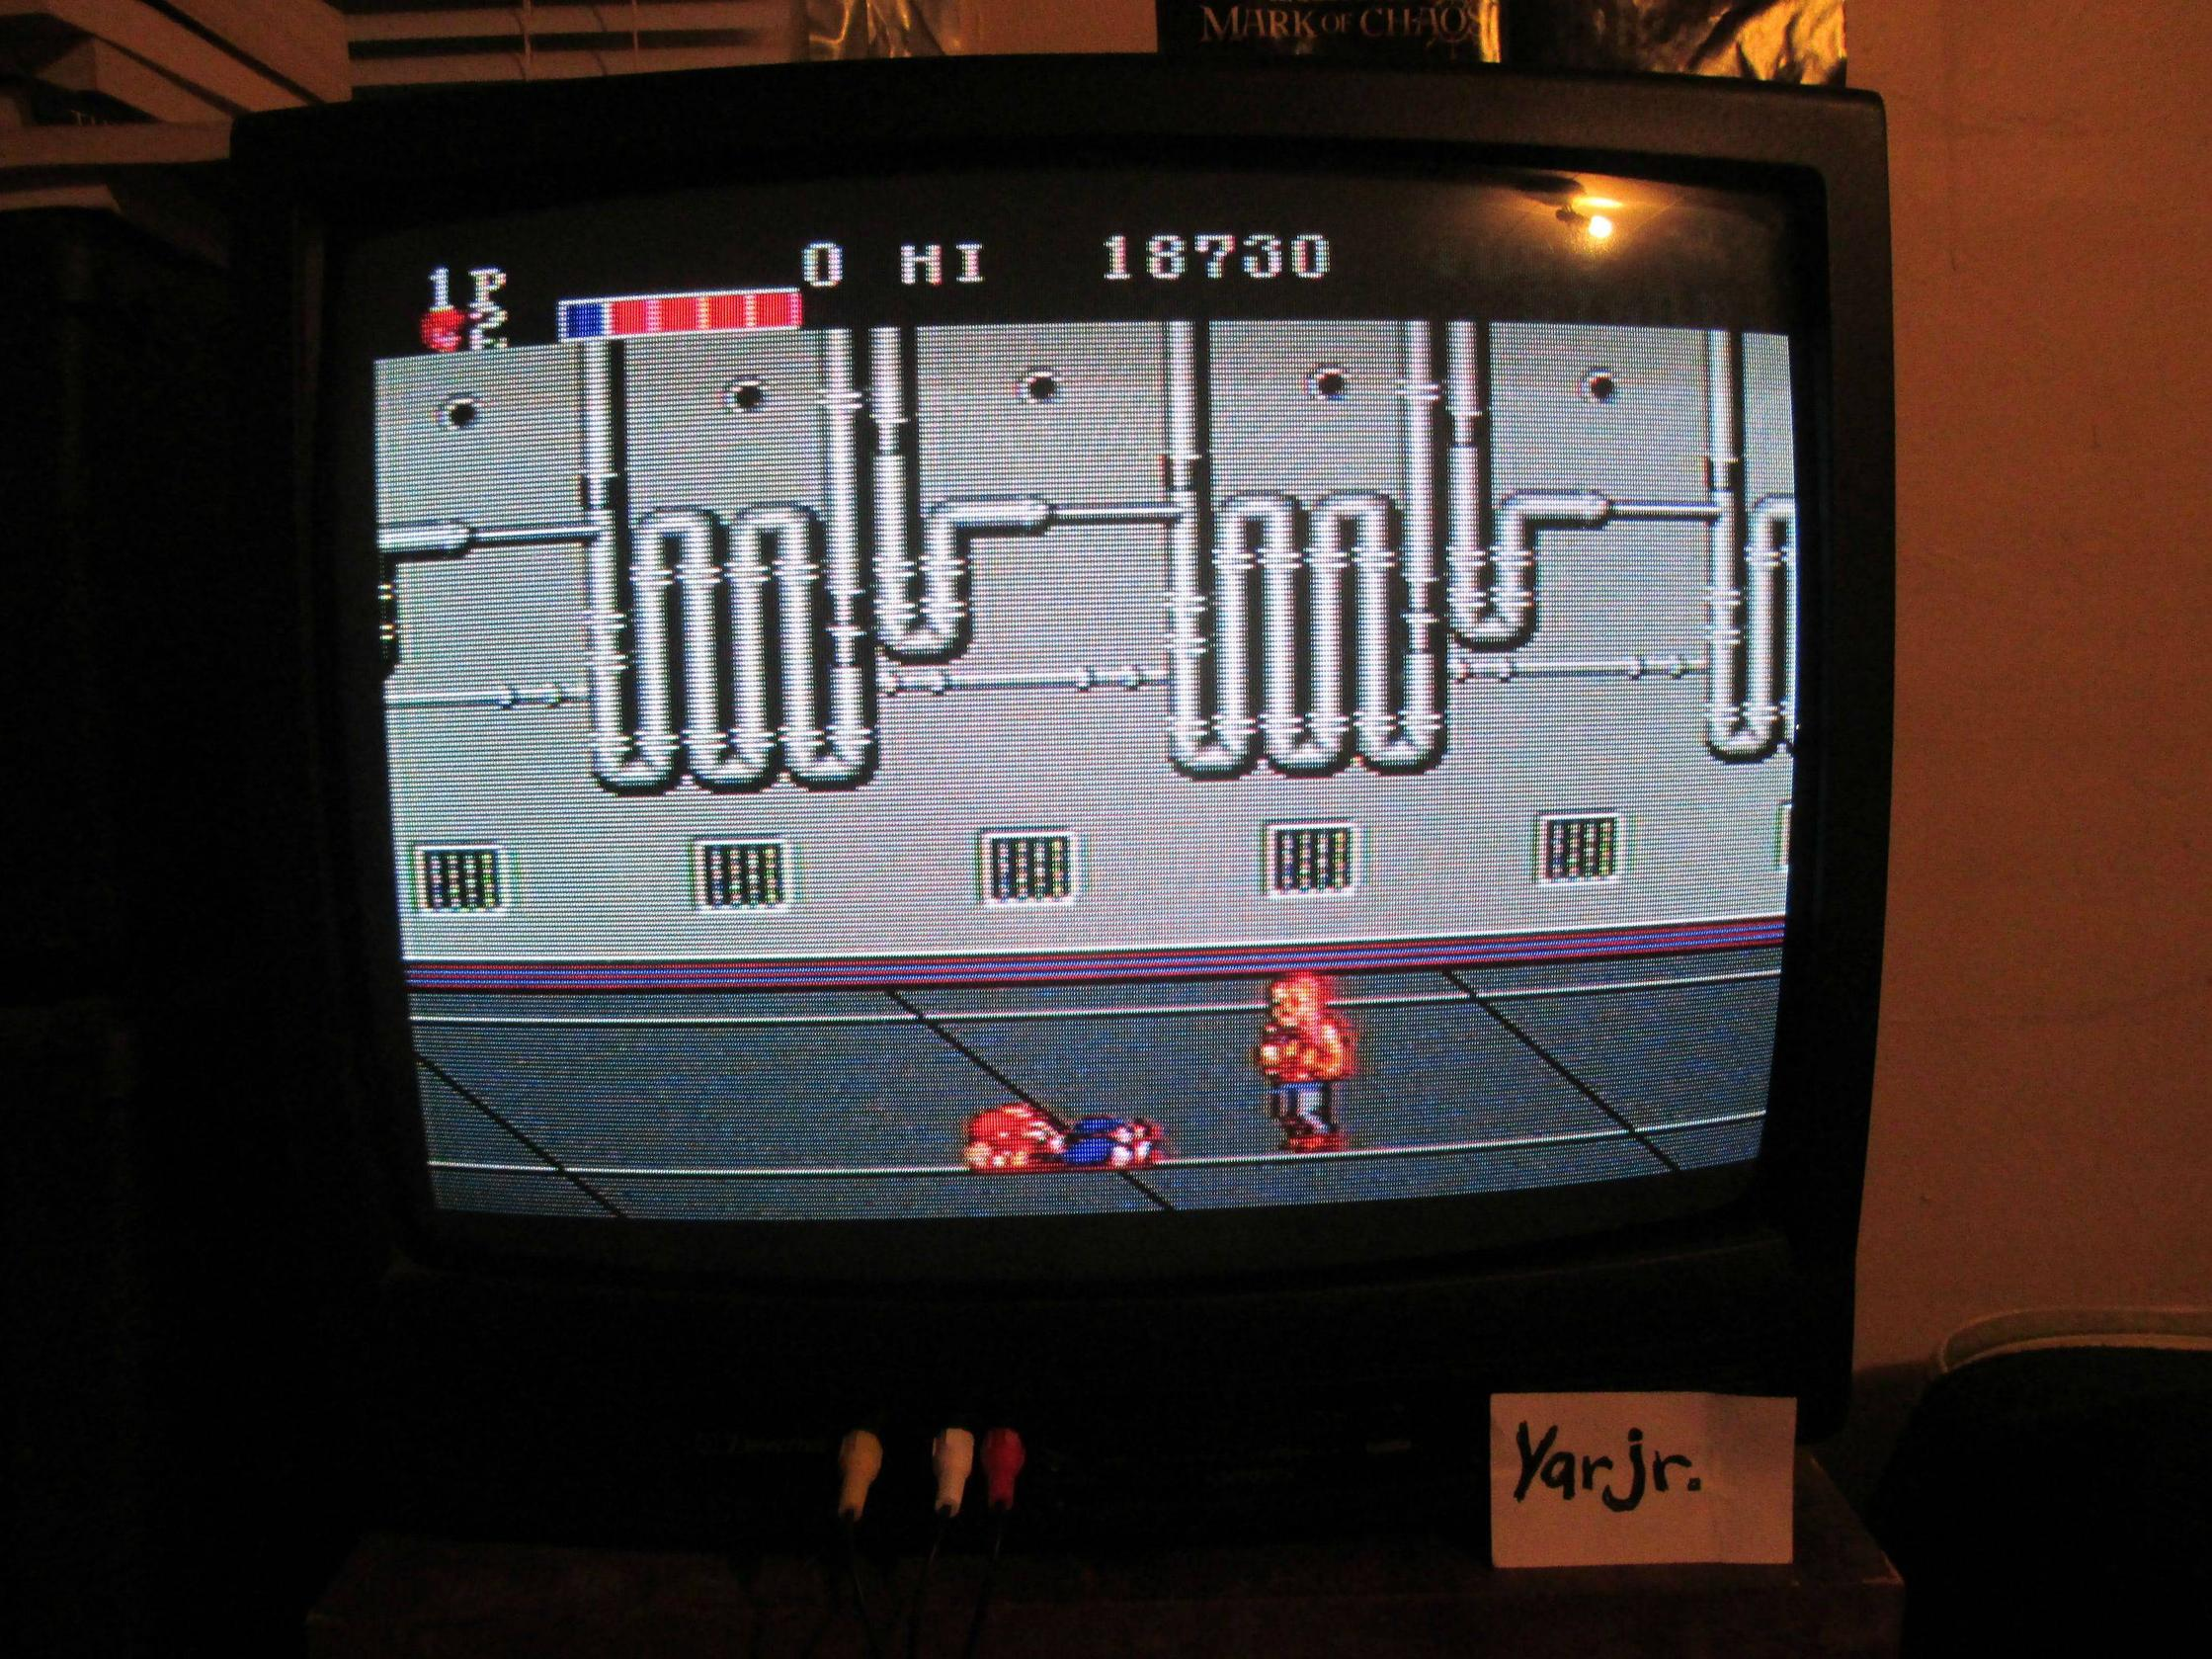 yarjr: Double Dragon (Sega Master System) 18,730 points on 2013-09-03 22:43:02